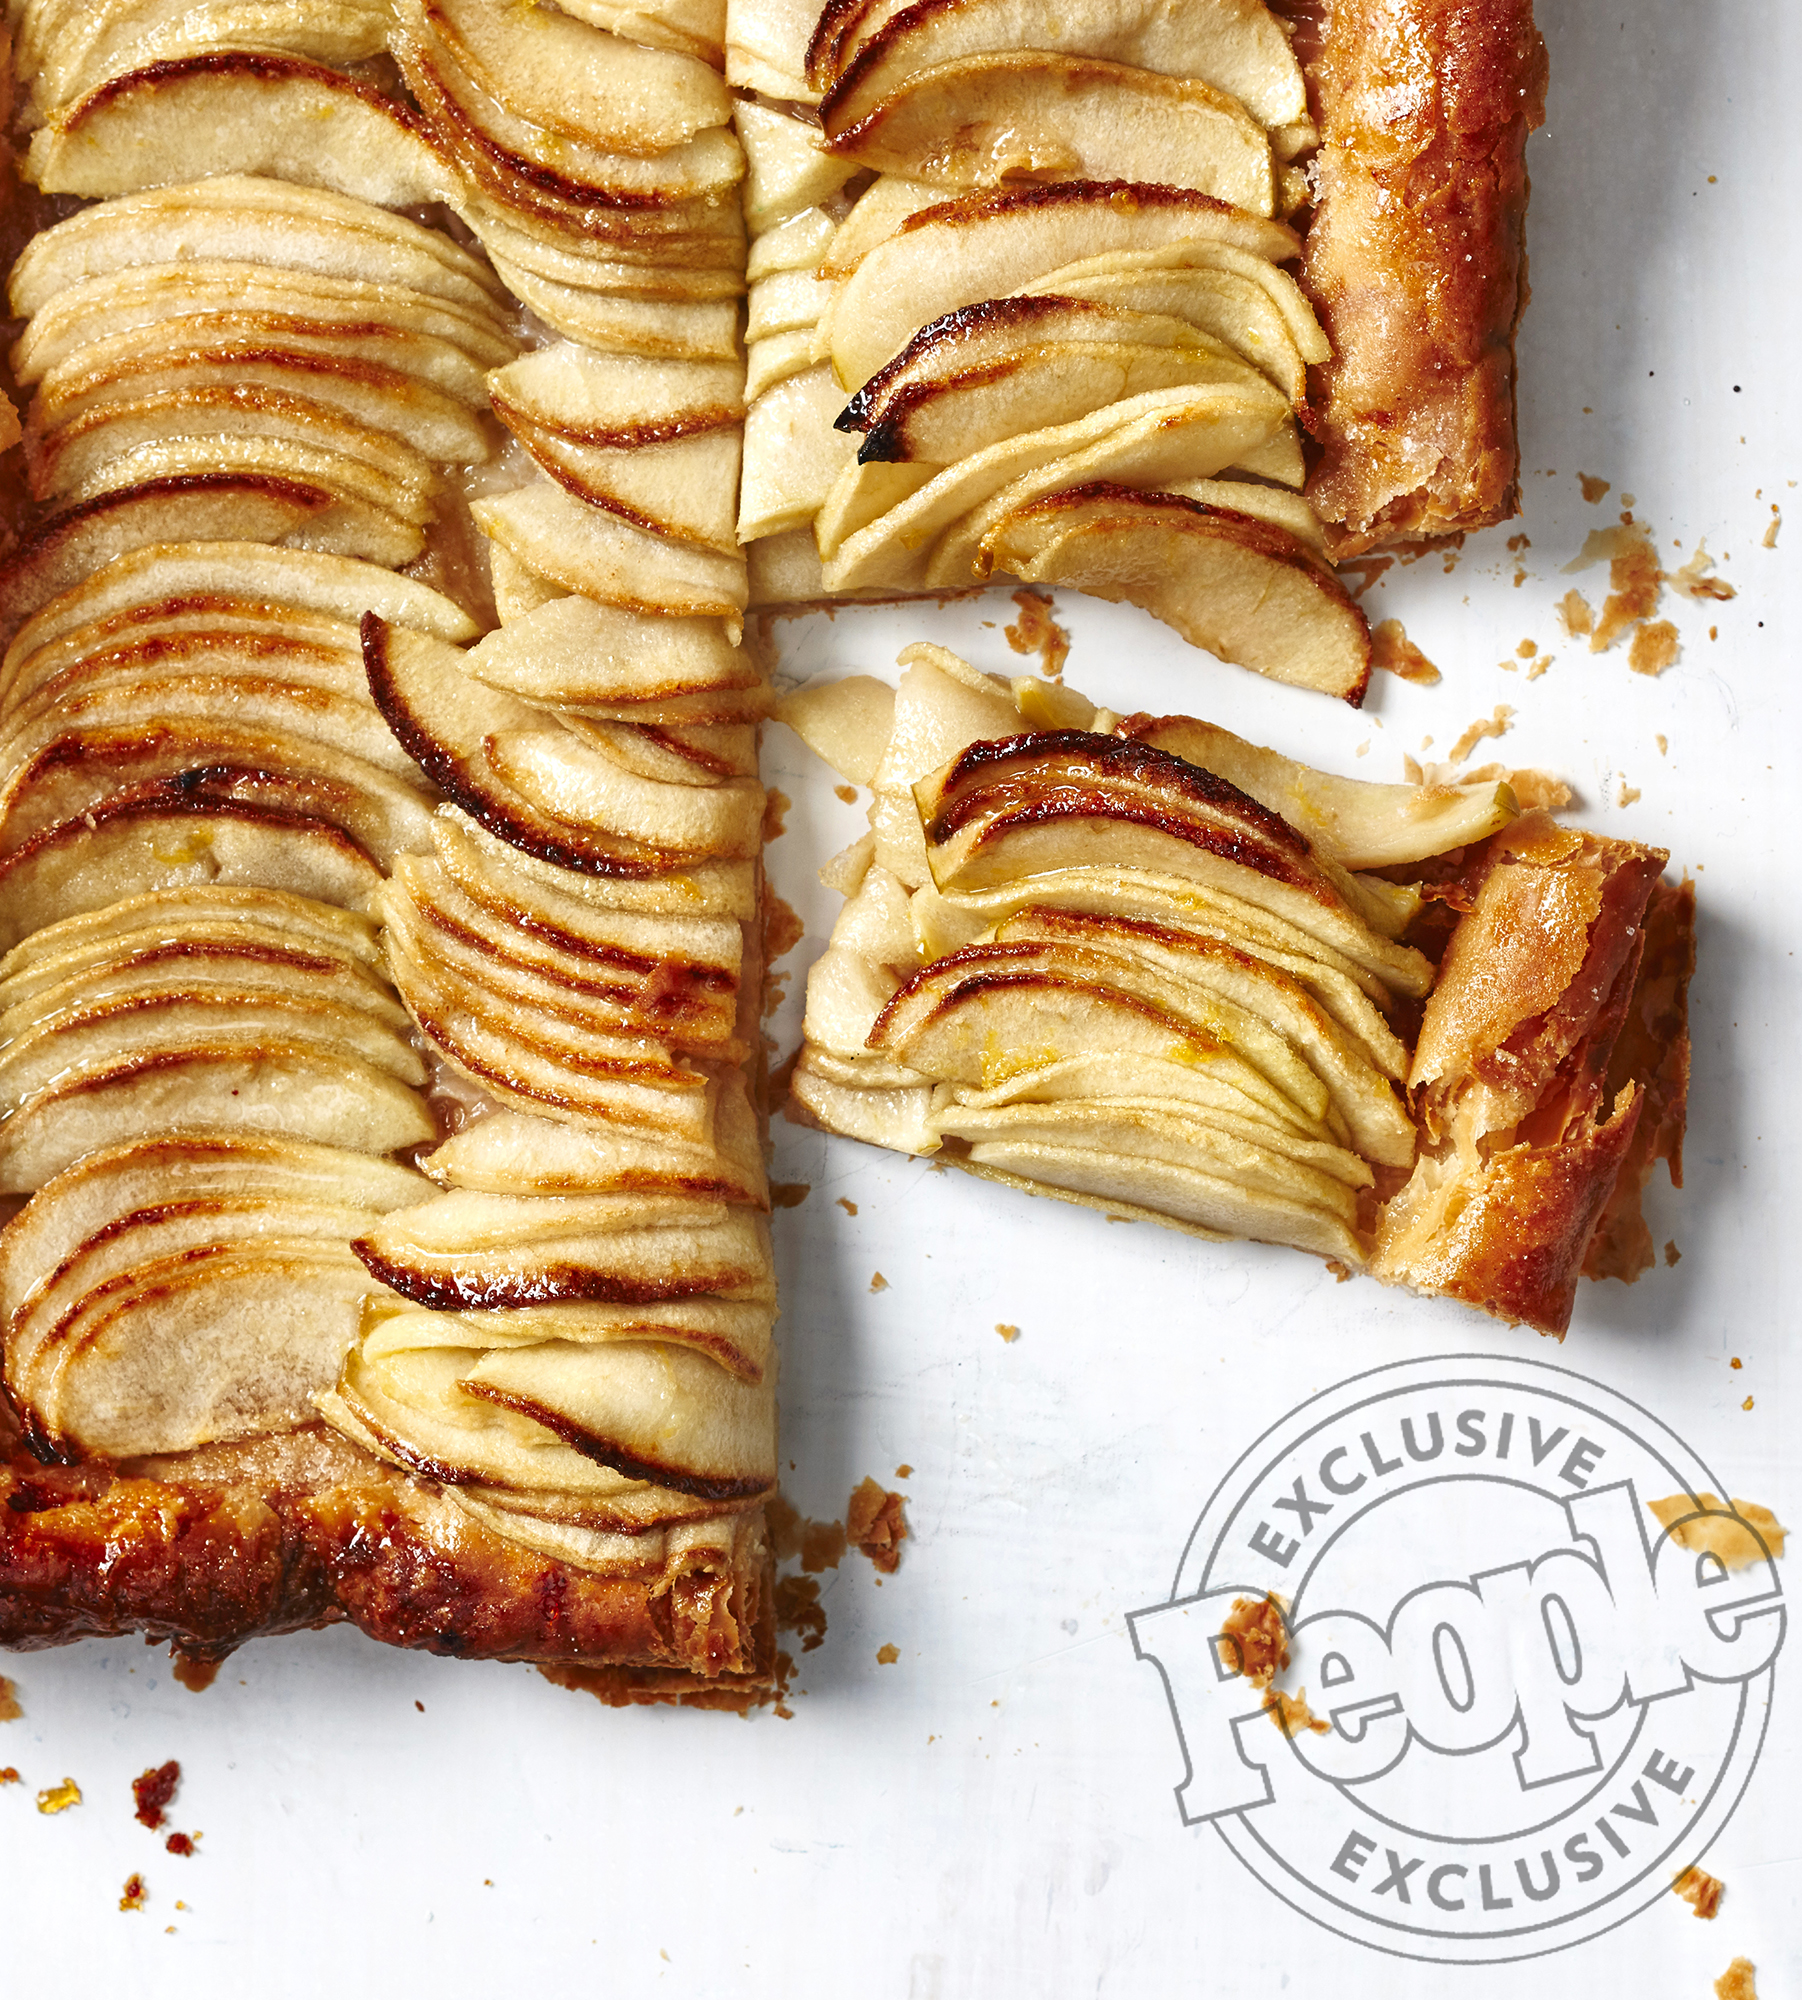 Alex Guarnaschelli S French Apple Tart People Com